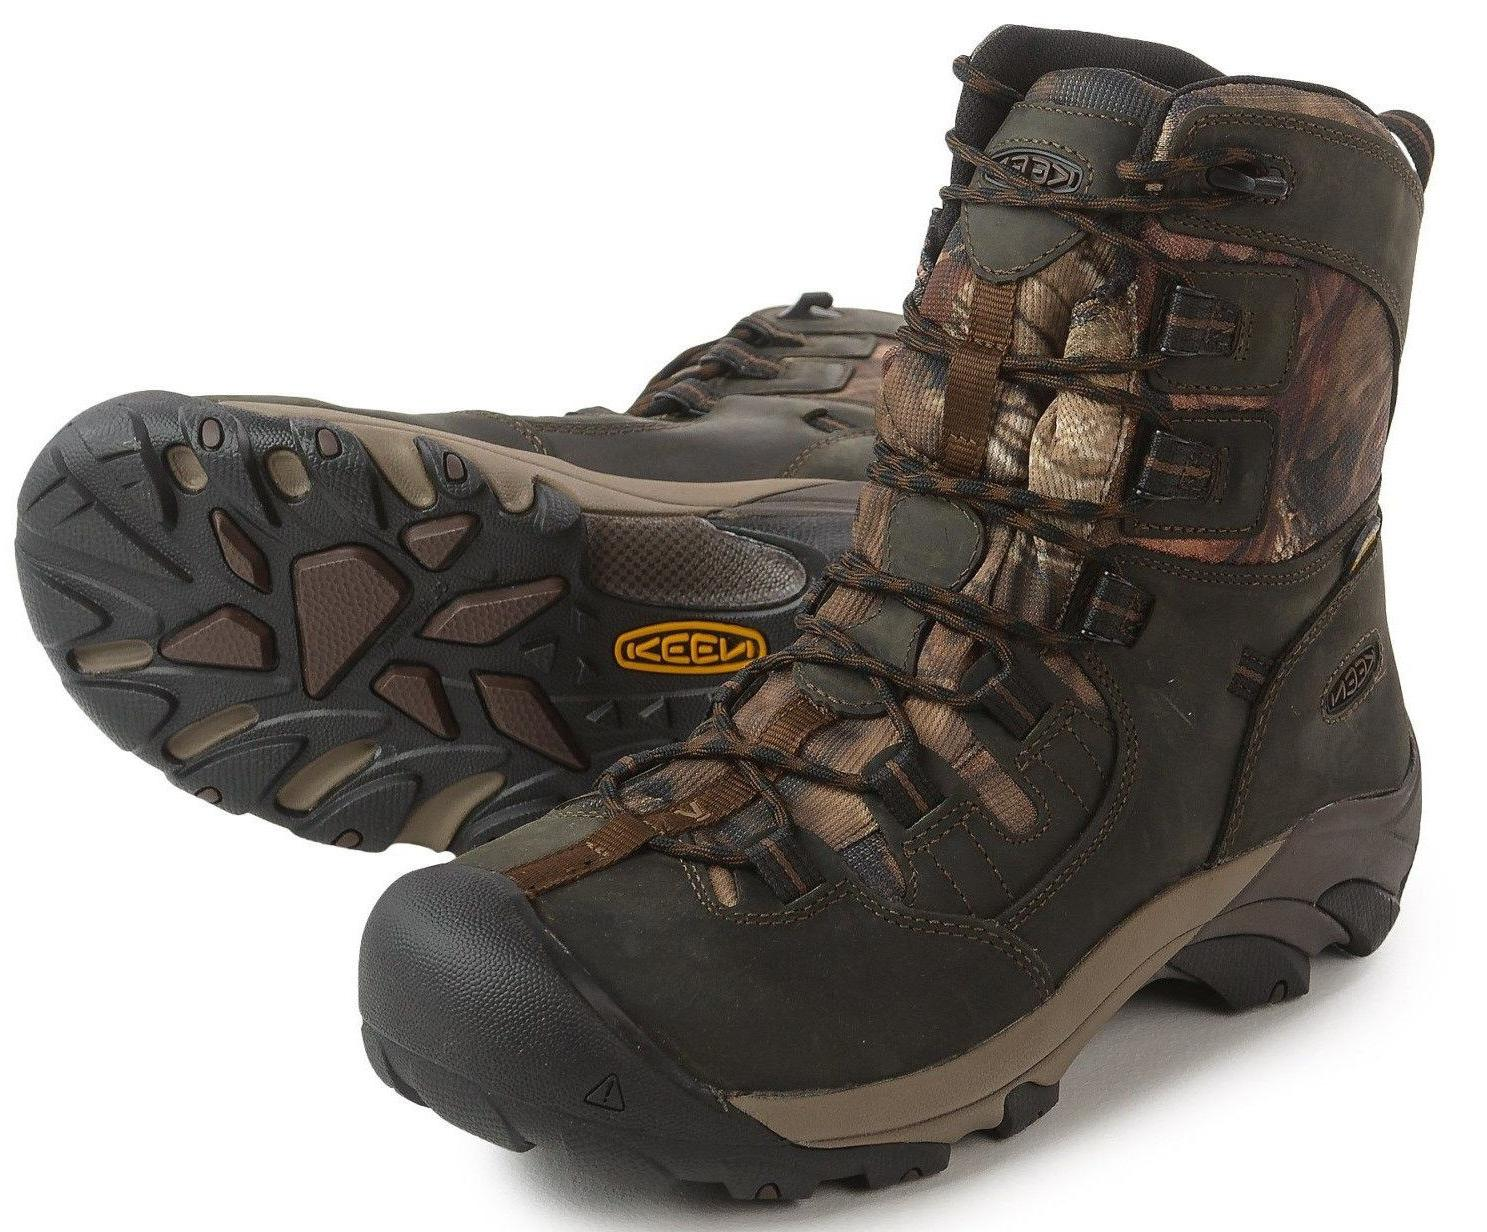 "KEEN DETROIT men's 8"" Waterproof  Work Hunting Hiking Boots"